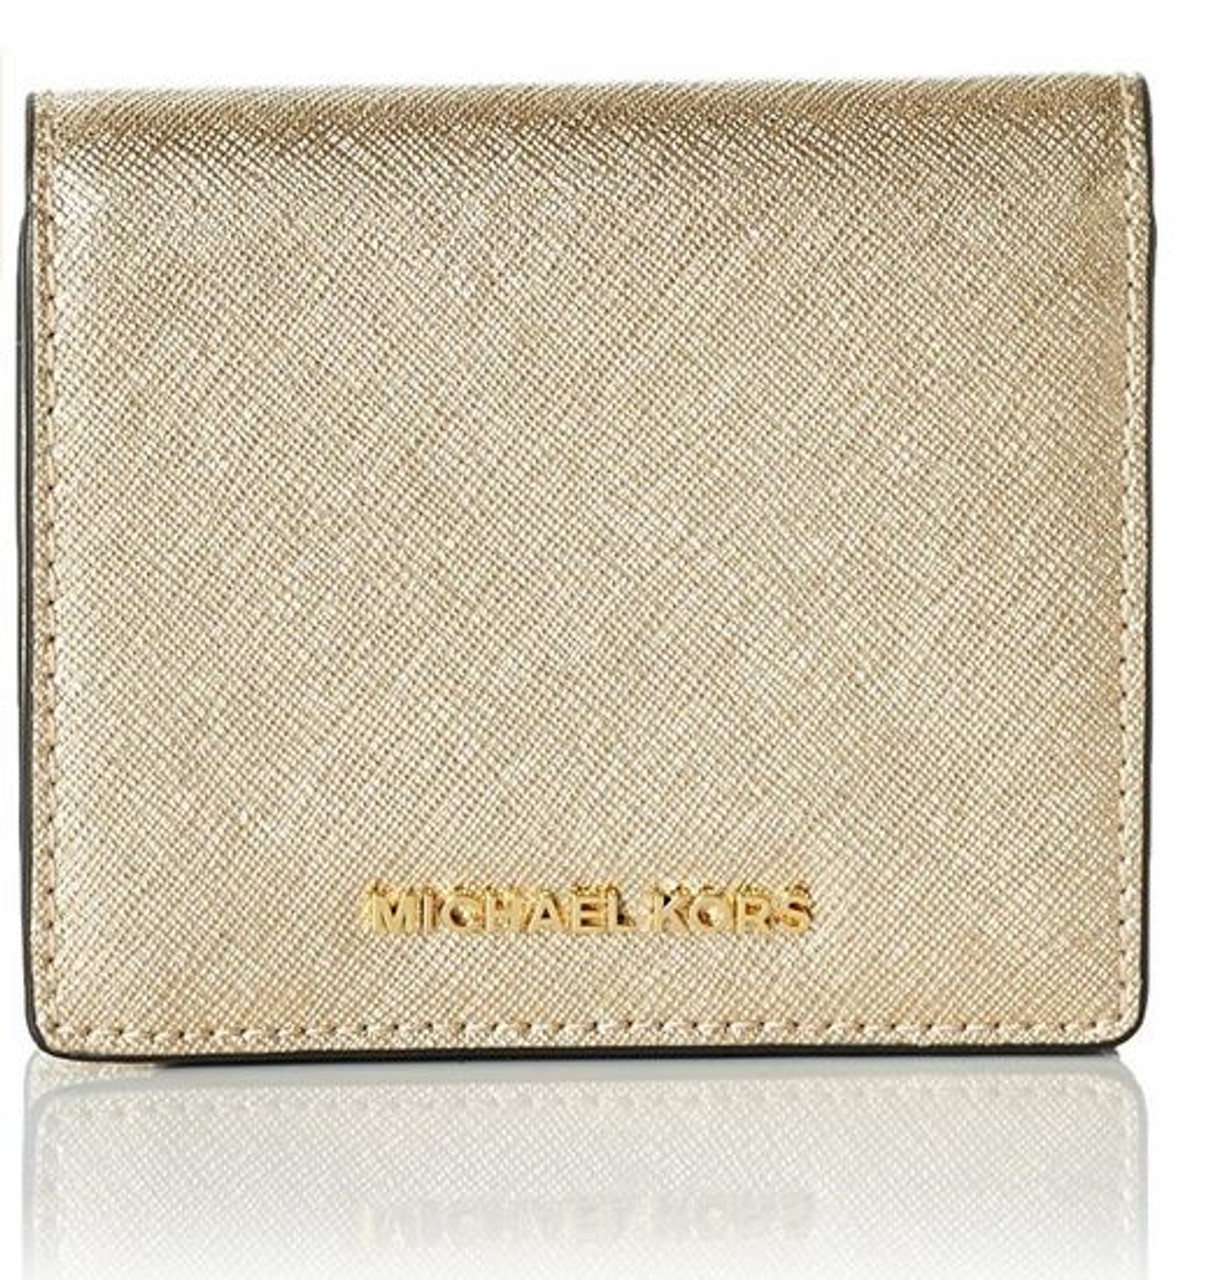 d8d4d1da81f36 Michael Kors Women's Jet Set Carry All Card Case, Pale Gold 32T6MTVD1M-740